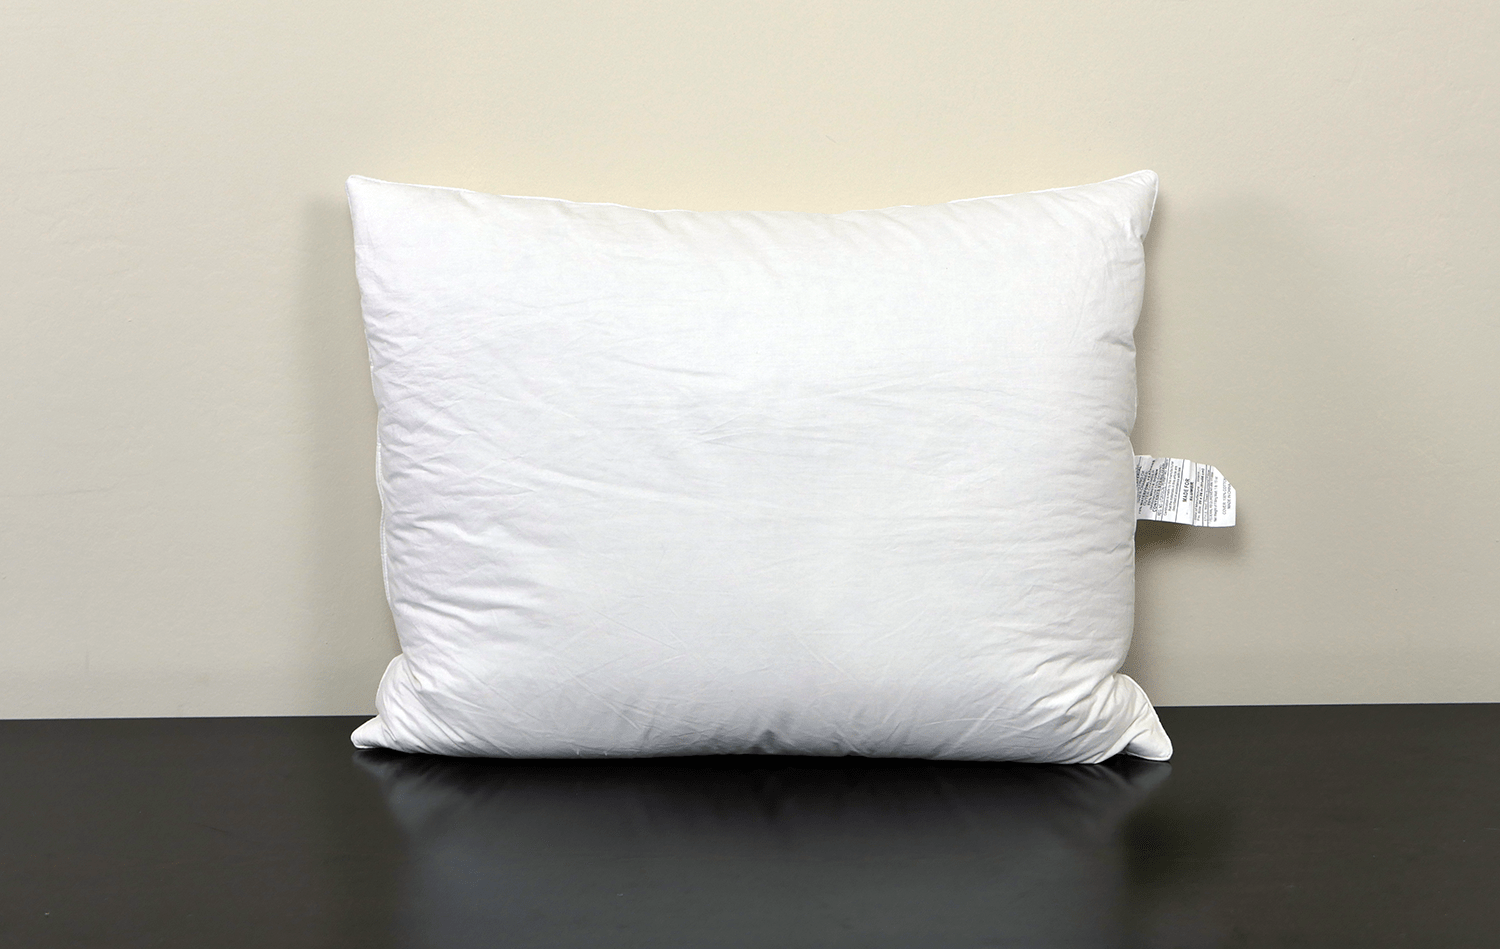 Vela model of the Slumbr pillow series